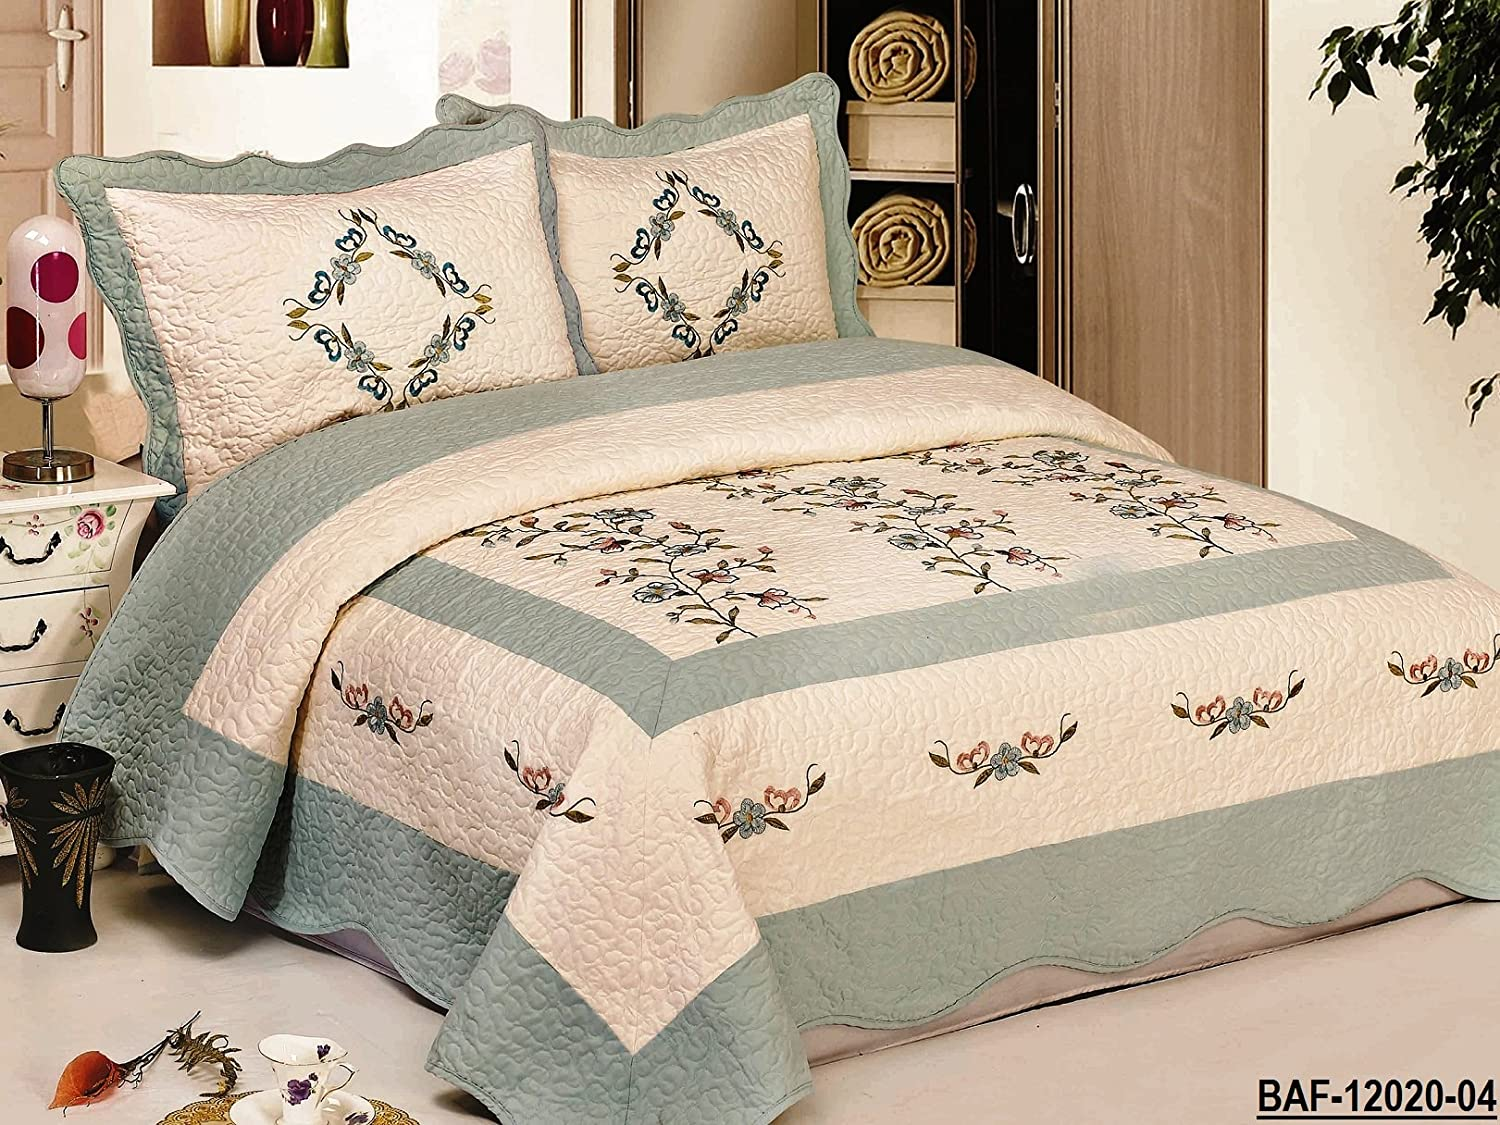 Brazilian embroidery bedspread designs - Amazon Com 3pcs High Quality Fully Quilted Embroidery Quilts Bedspread Bed Coverlets Cover Set Queen King Beige Aquablue Home Kitchen